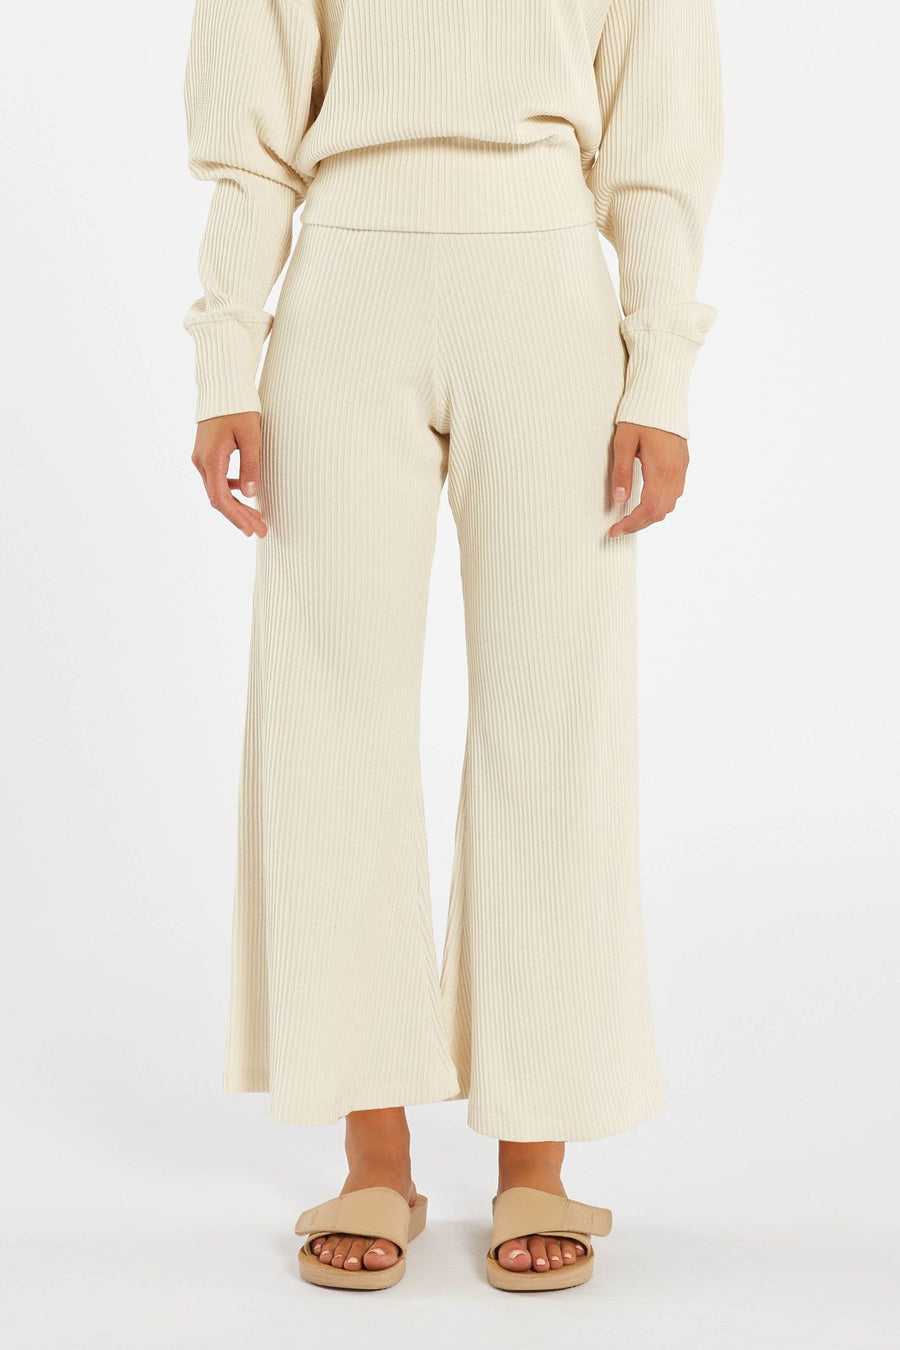 Zulu and Zephyr Endless Pant Cream